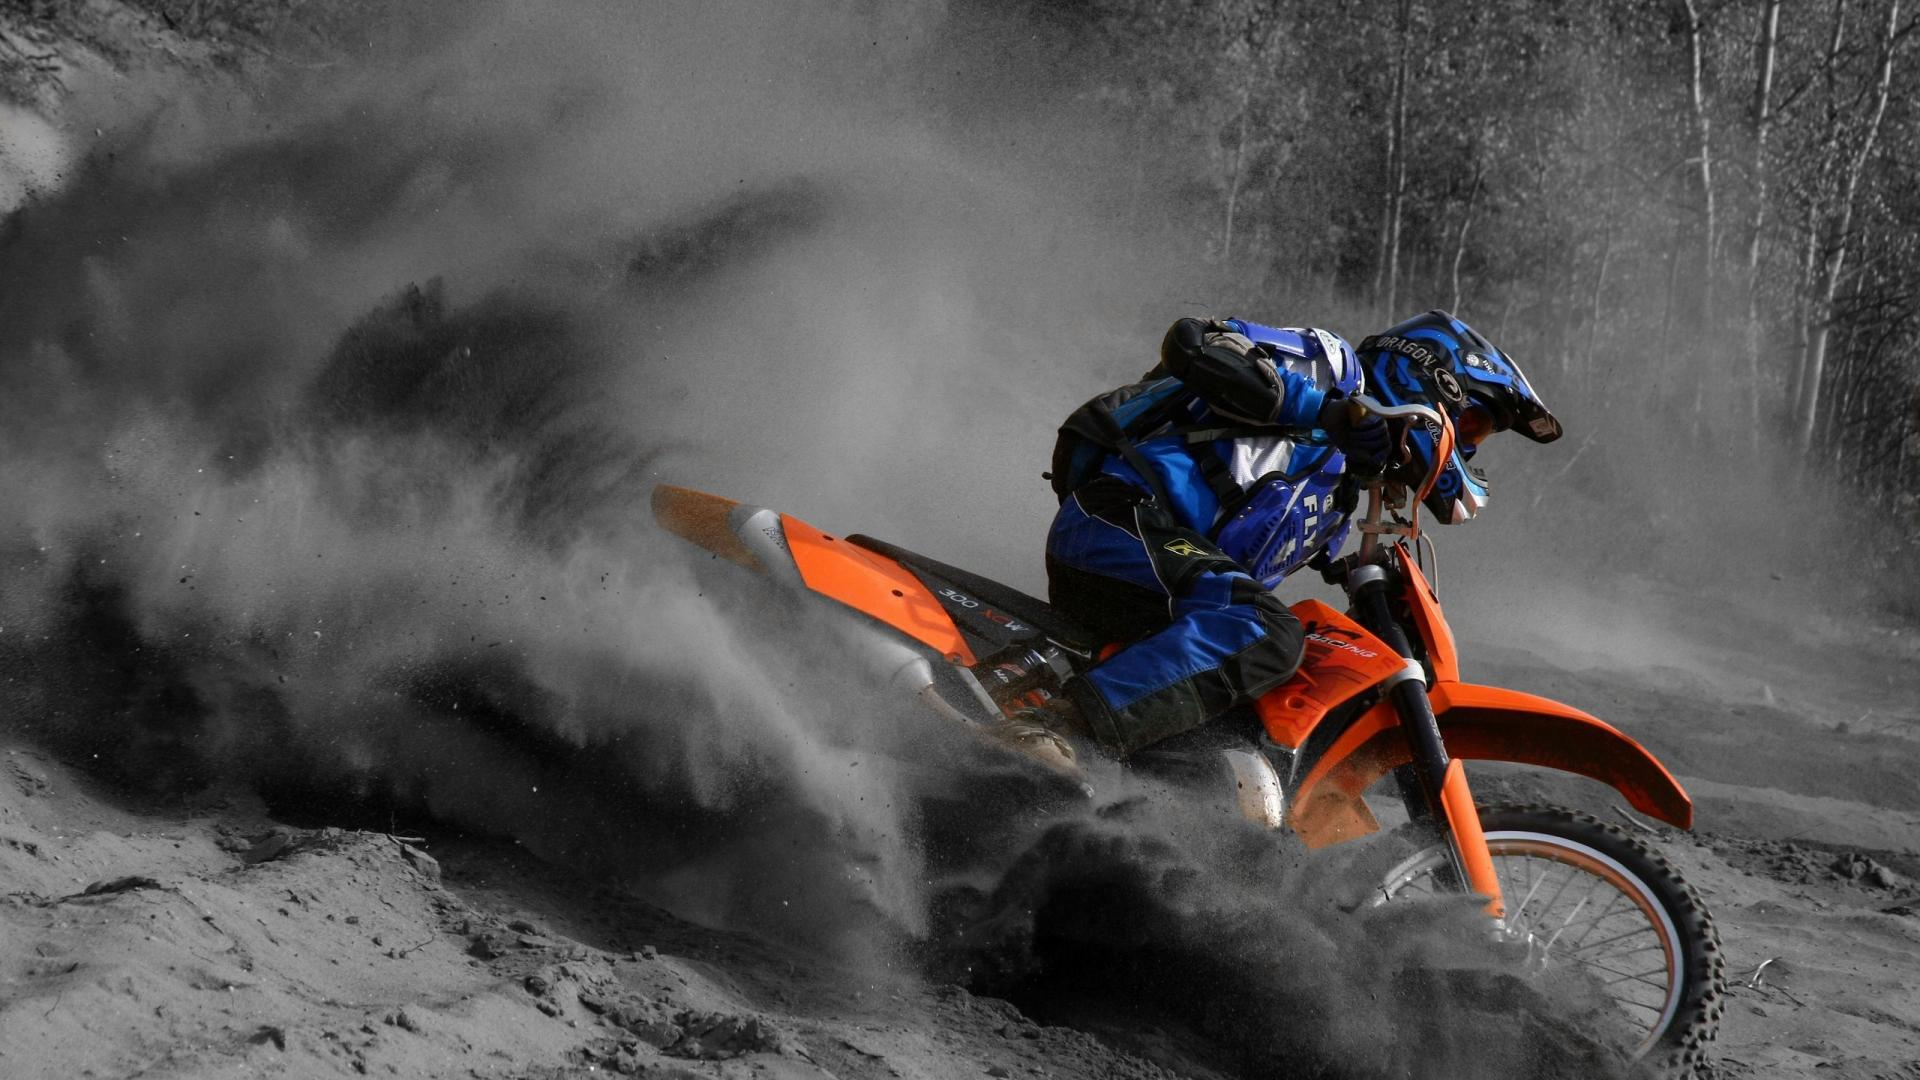 dirt bike backgrounds wallpaper cave